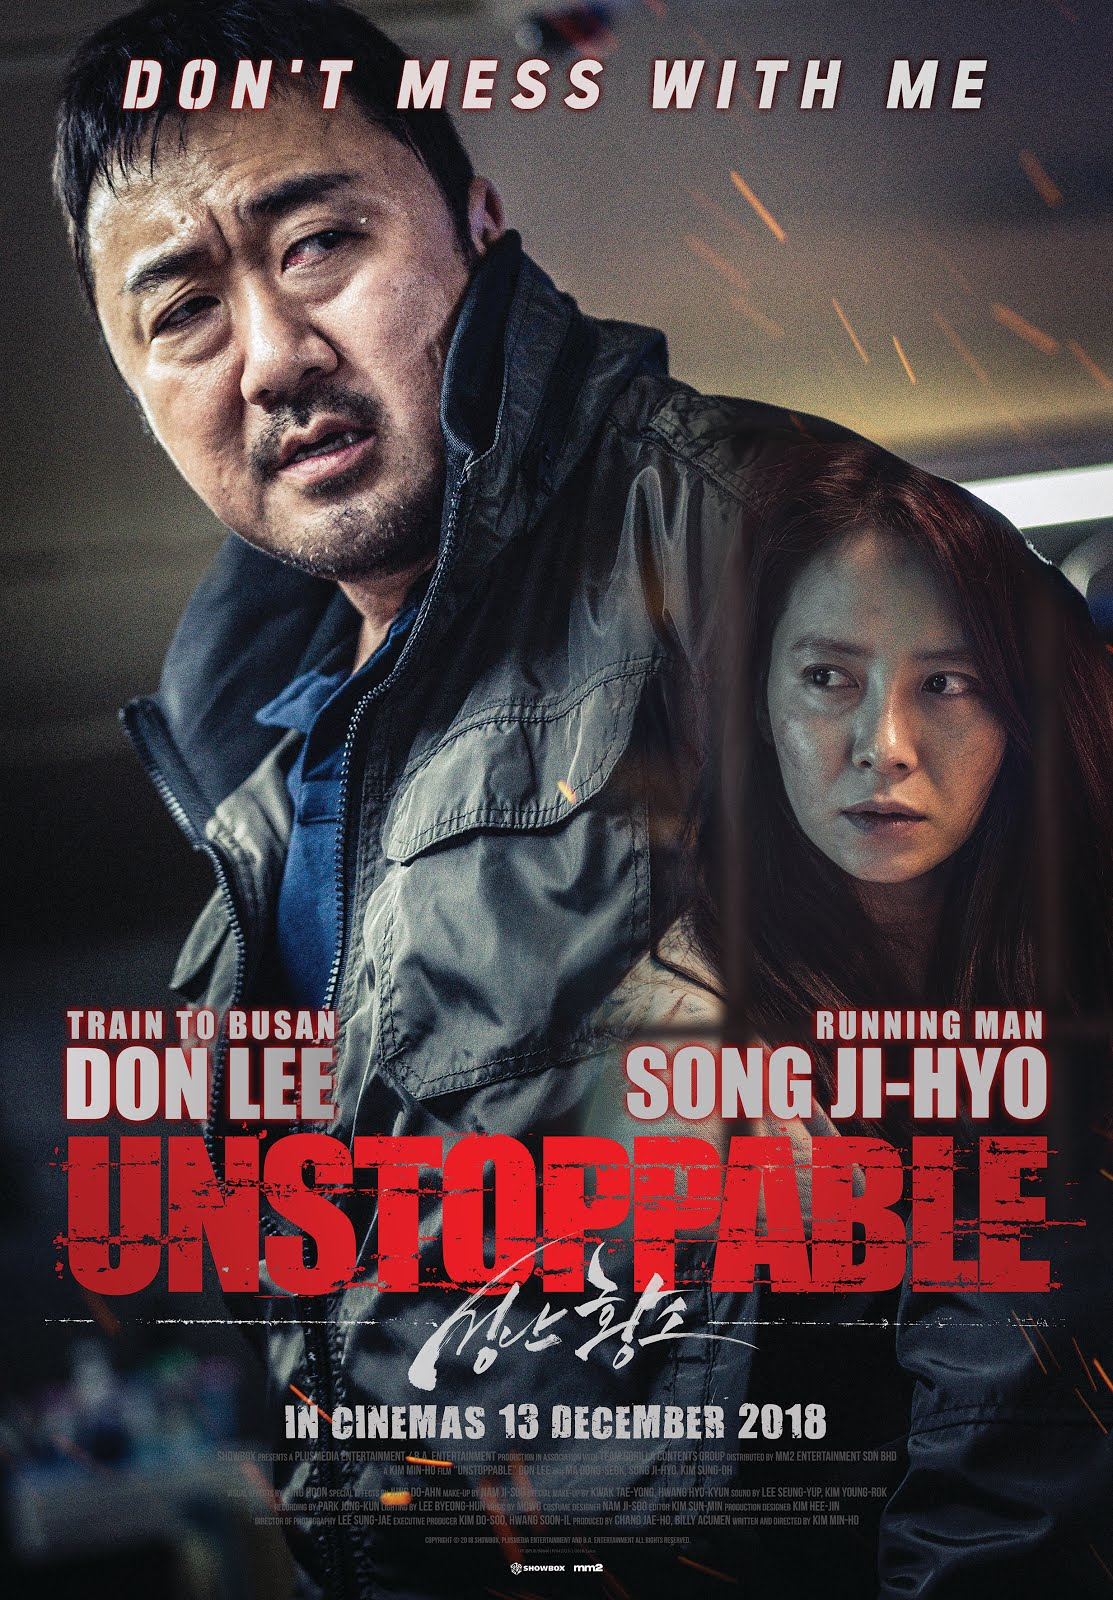 Mm2 Upcoming Movie Unstoppable Starring Ma Dong Seok Song Ji Hyo And Kim Sung Oh Is Set To Premiere In Mm2 Cinemas On 13 December